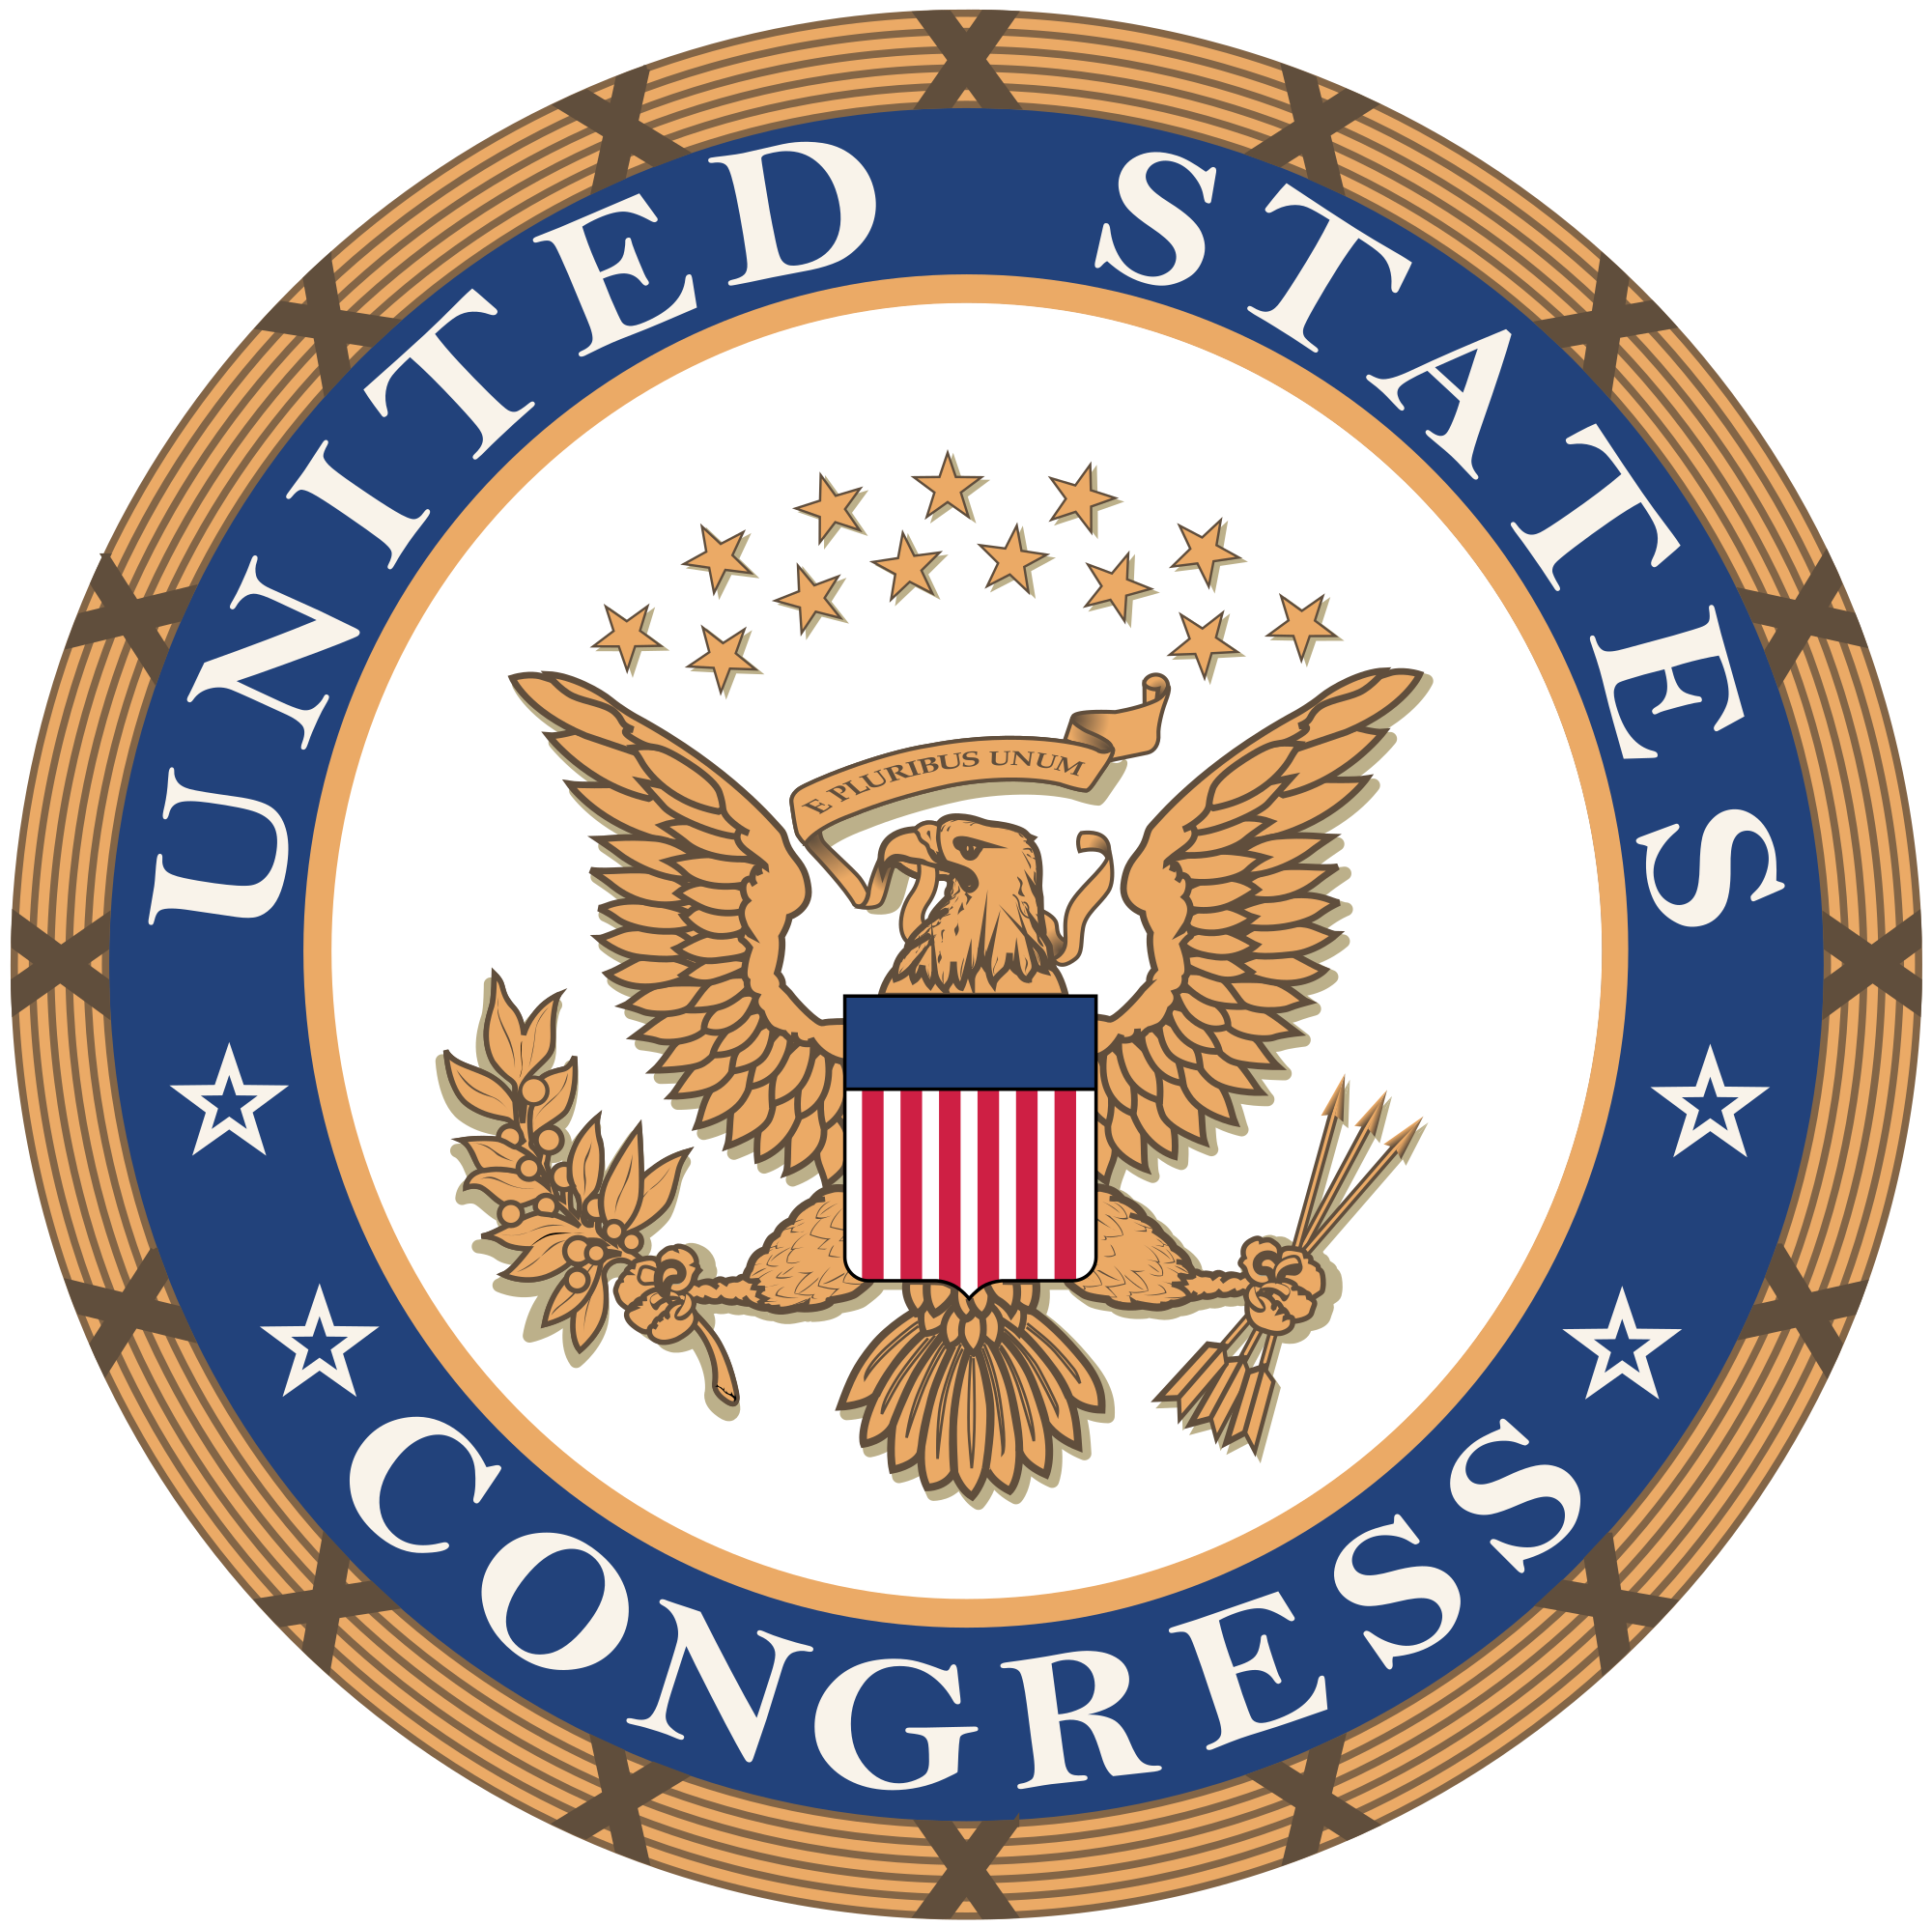 House of congress clipart graphic royalty free download Collection of 14 free Congressmen clipart transparent. Download on ... graphic royalty free download